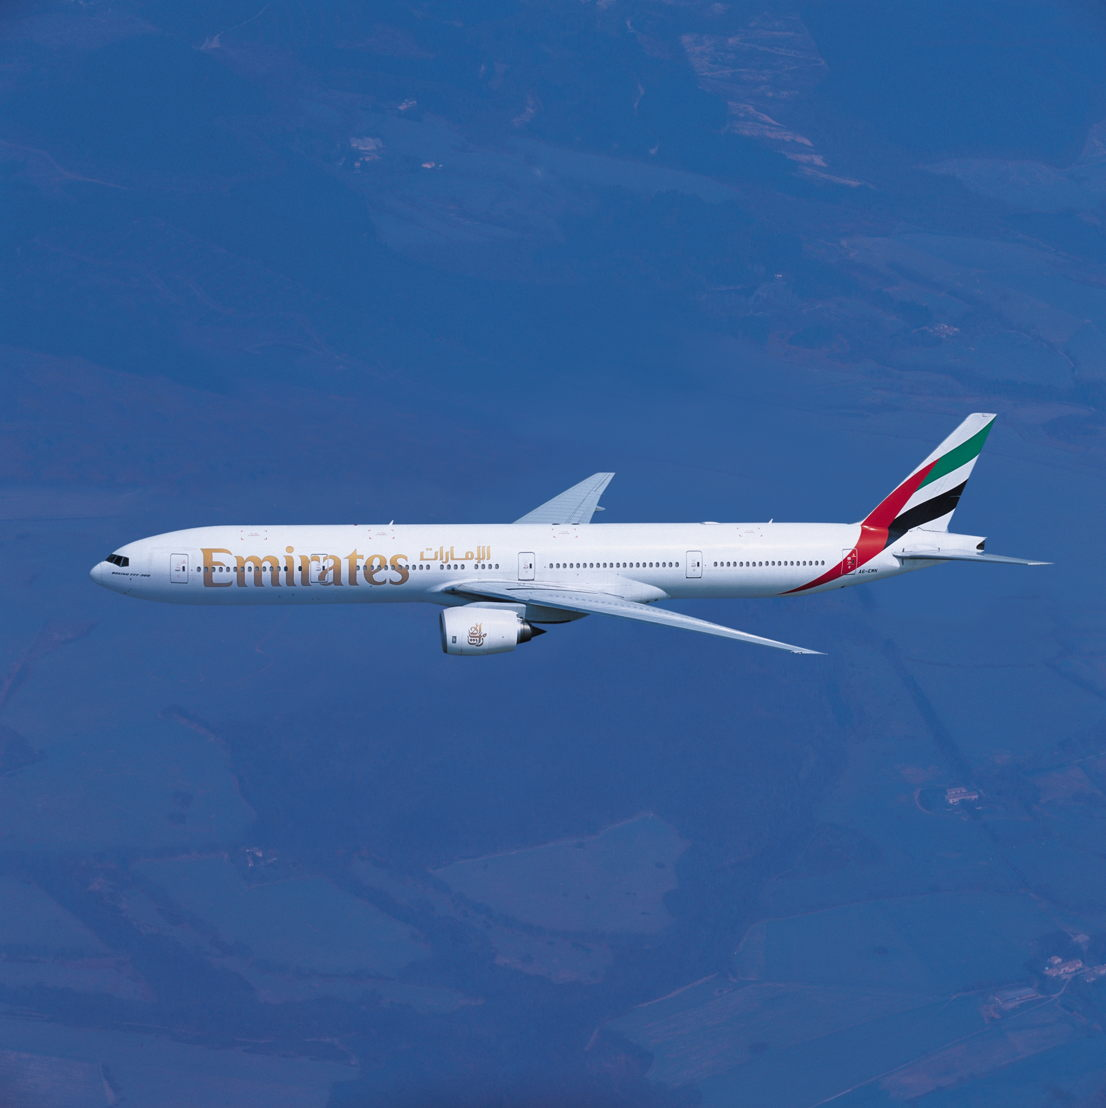 An Emirates Boeing 777-300 wide-body aircraft